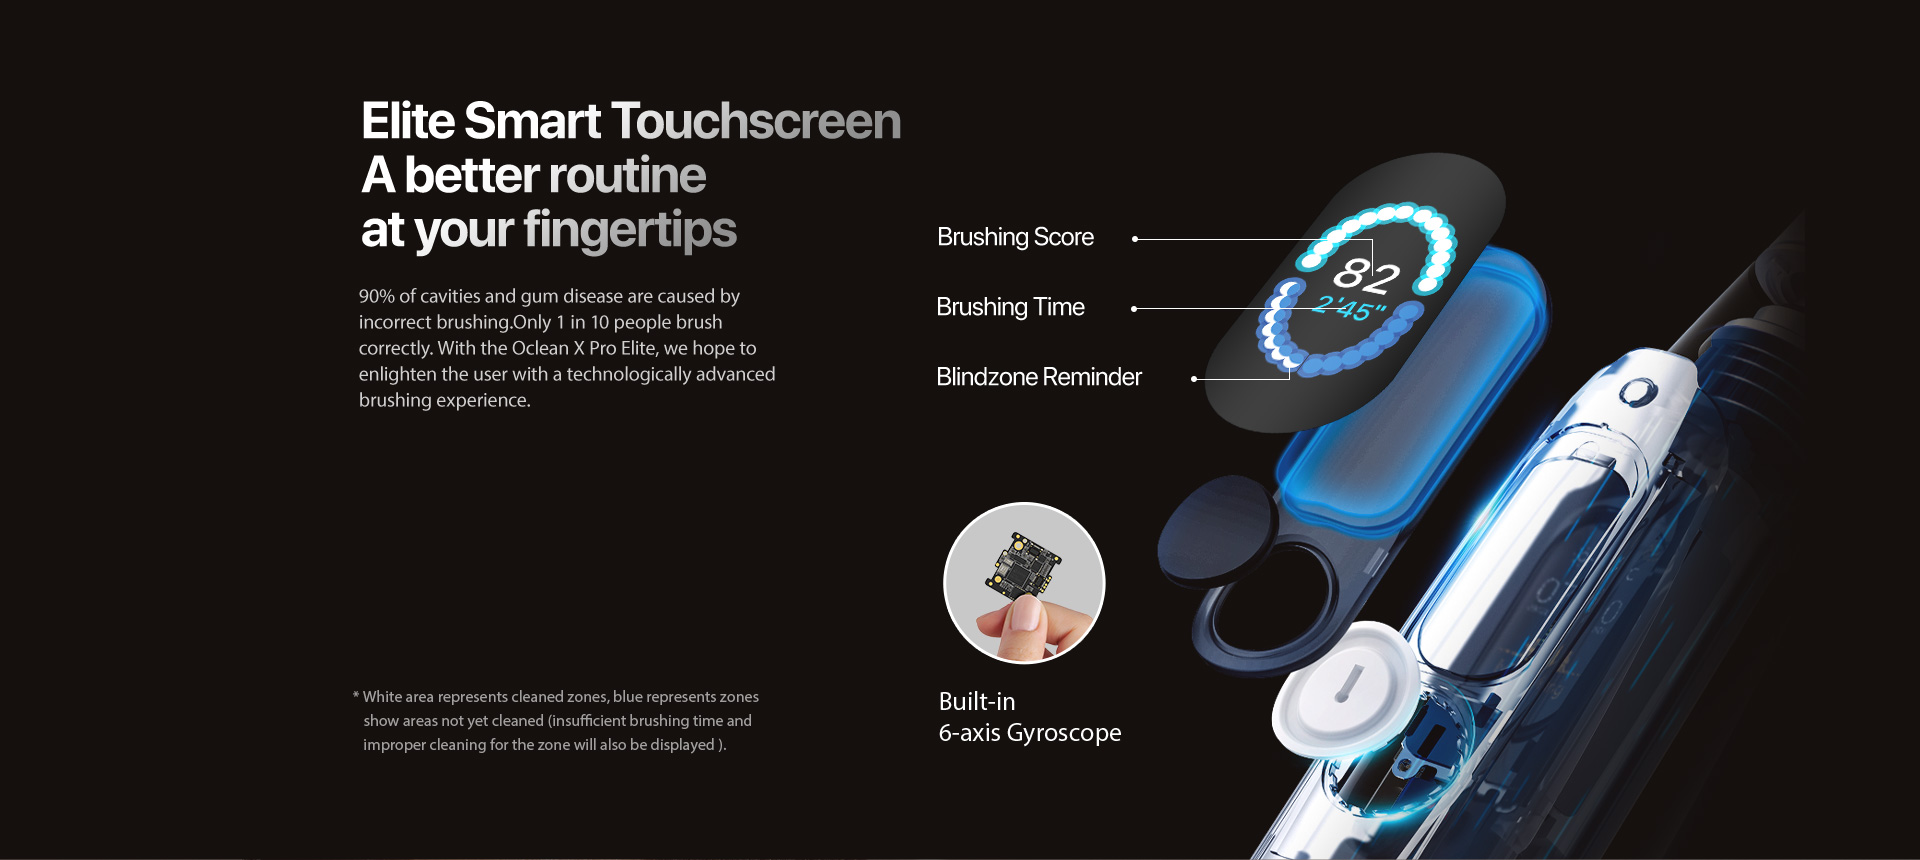 Elite smart touchscreeen a betterroutine at your fingertips